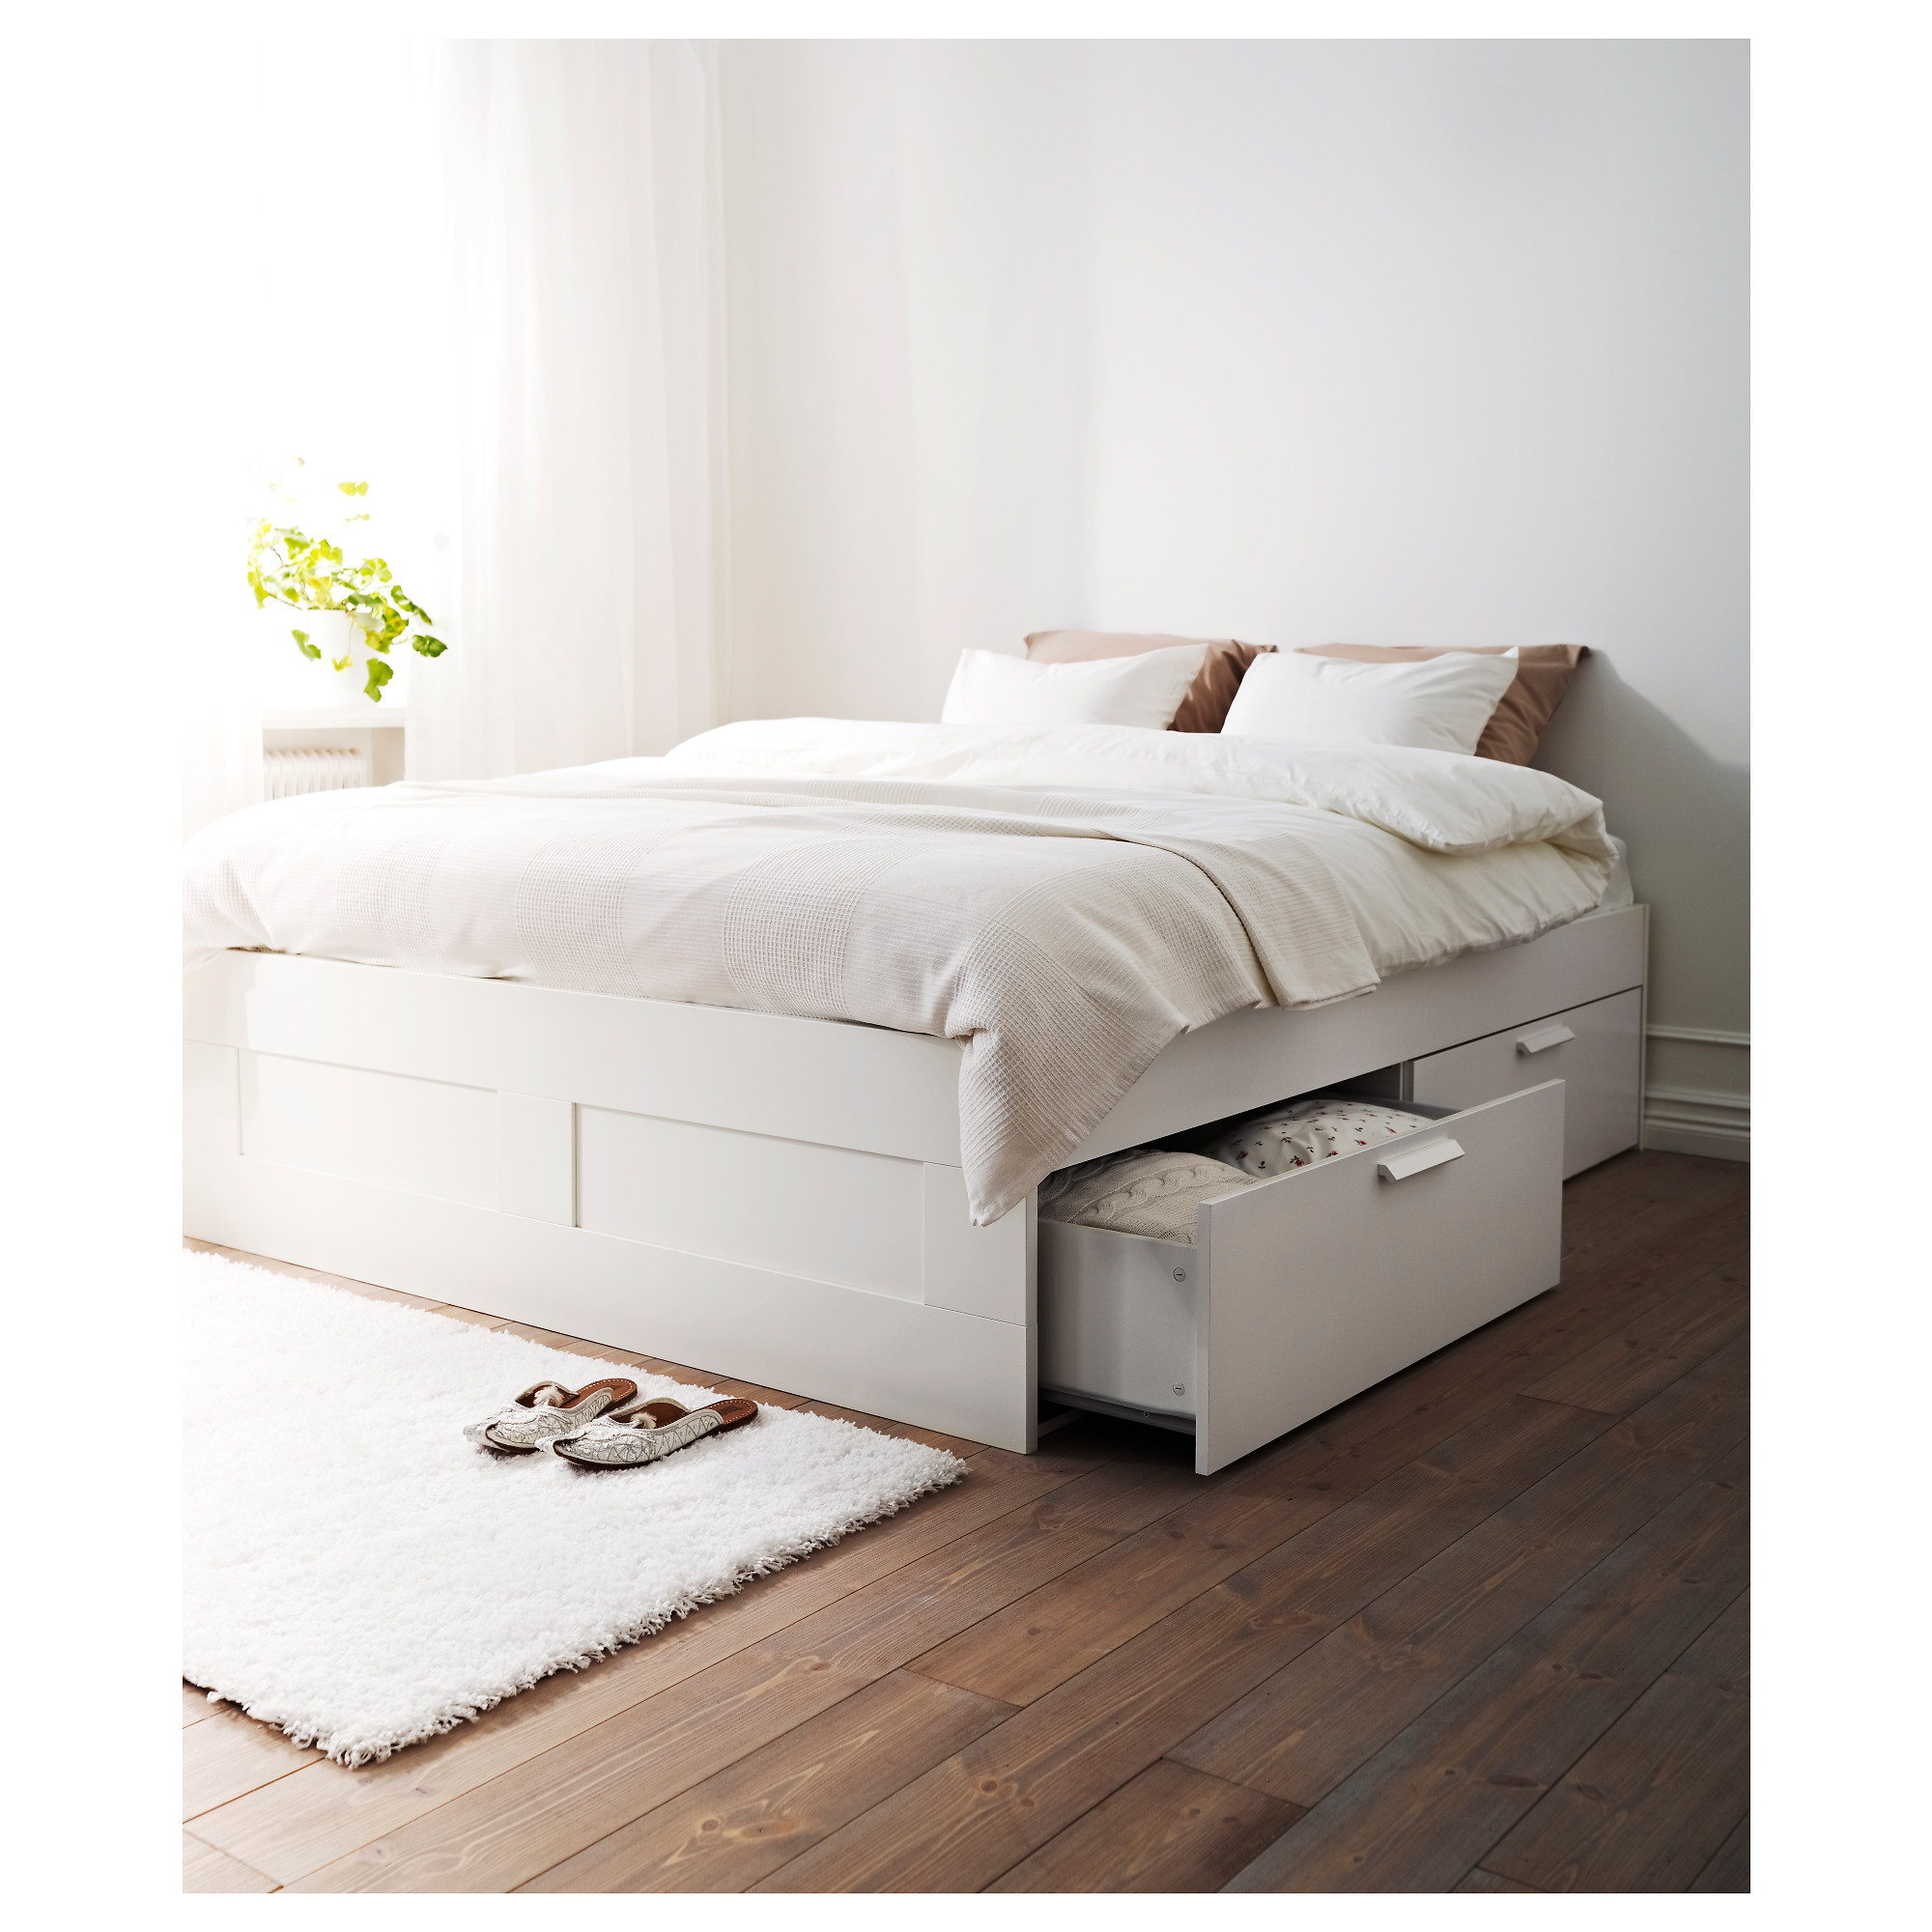 BRIMNES Bed frame with storage white Queen IKEA